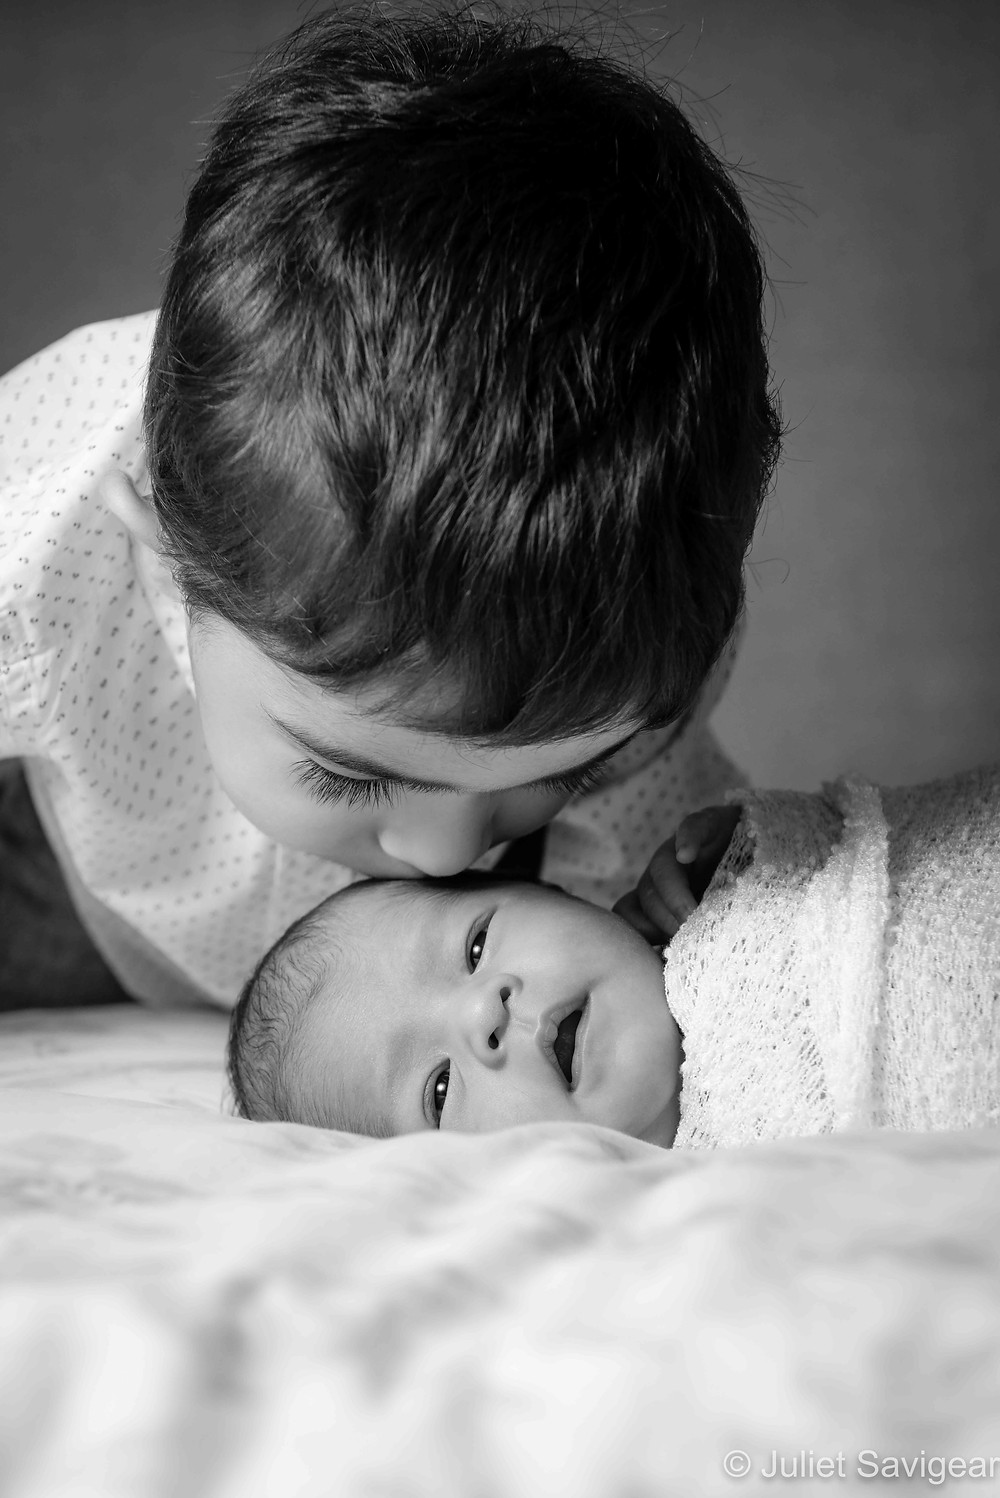 Brother's kiss for baby sister